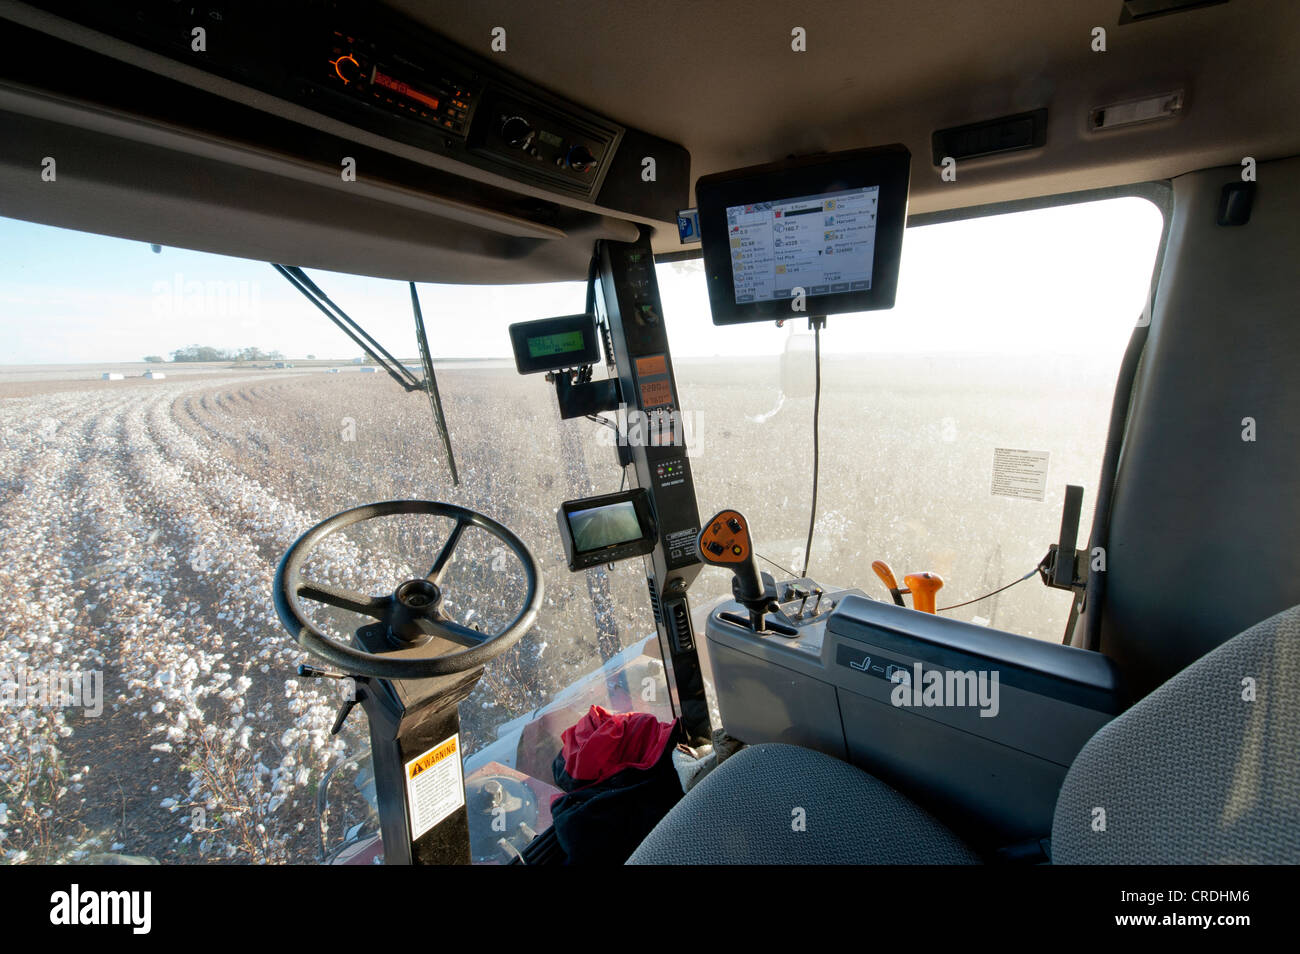 Inside Of A Combine : Inside combine cab using gps and other technology to farm